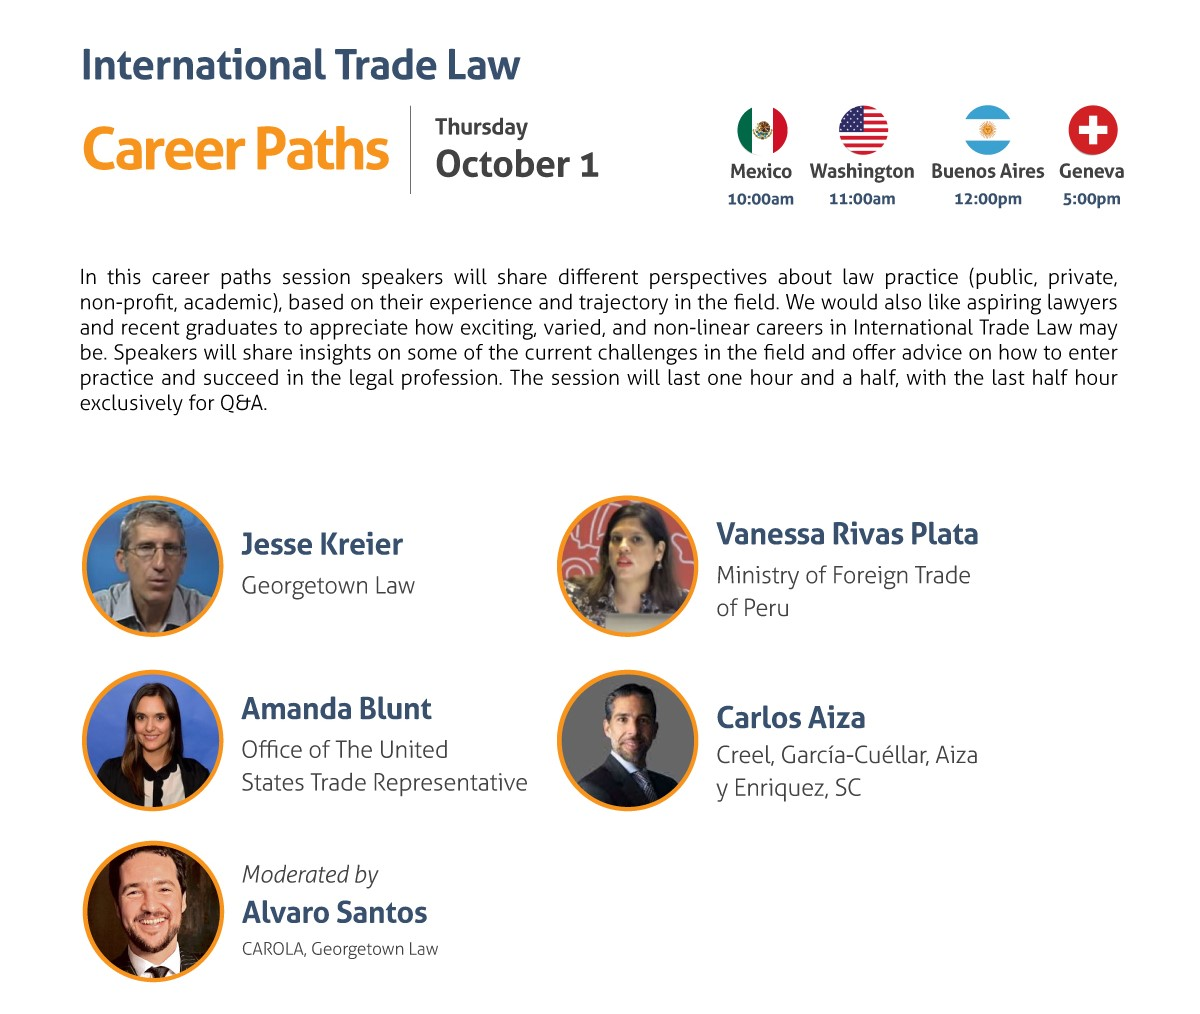 International Trade Law Career Paths Thursday, October 1 10:00 am Mexico City 11:00 am Washington, DC 12:00 pm Buenos Aires 5:00 pm Geneva In this career paths session speakers will share different perspectives about law practice (public, private, non-profit, academic), based on their experience and trajectory in the field. We would also like aspiring lawyers and recent graduates to appreciate how exciting, varied, and non-linear careers in International Trade Law may be. Speakers will share insights on some of the current challenges in the field and offer advice on how to enter practice and succeed in the legal profession. The session will last one hour and a half, with the last half hour exclusively for Q&A. - Jesse Kreier, Georgetown Law - Amanda Blunt, Office of the United States Trade Representative - Vanessa Rivas Plata, Ministry of Foreign Trade of Peru - Carlos Aiza, Creel, García-Cuéllar, Aiza y Enriquez, SC Moderated by: Alvaro Santos, CAROLA, Georgetown Law